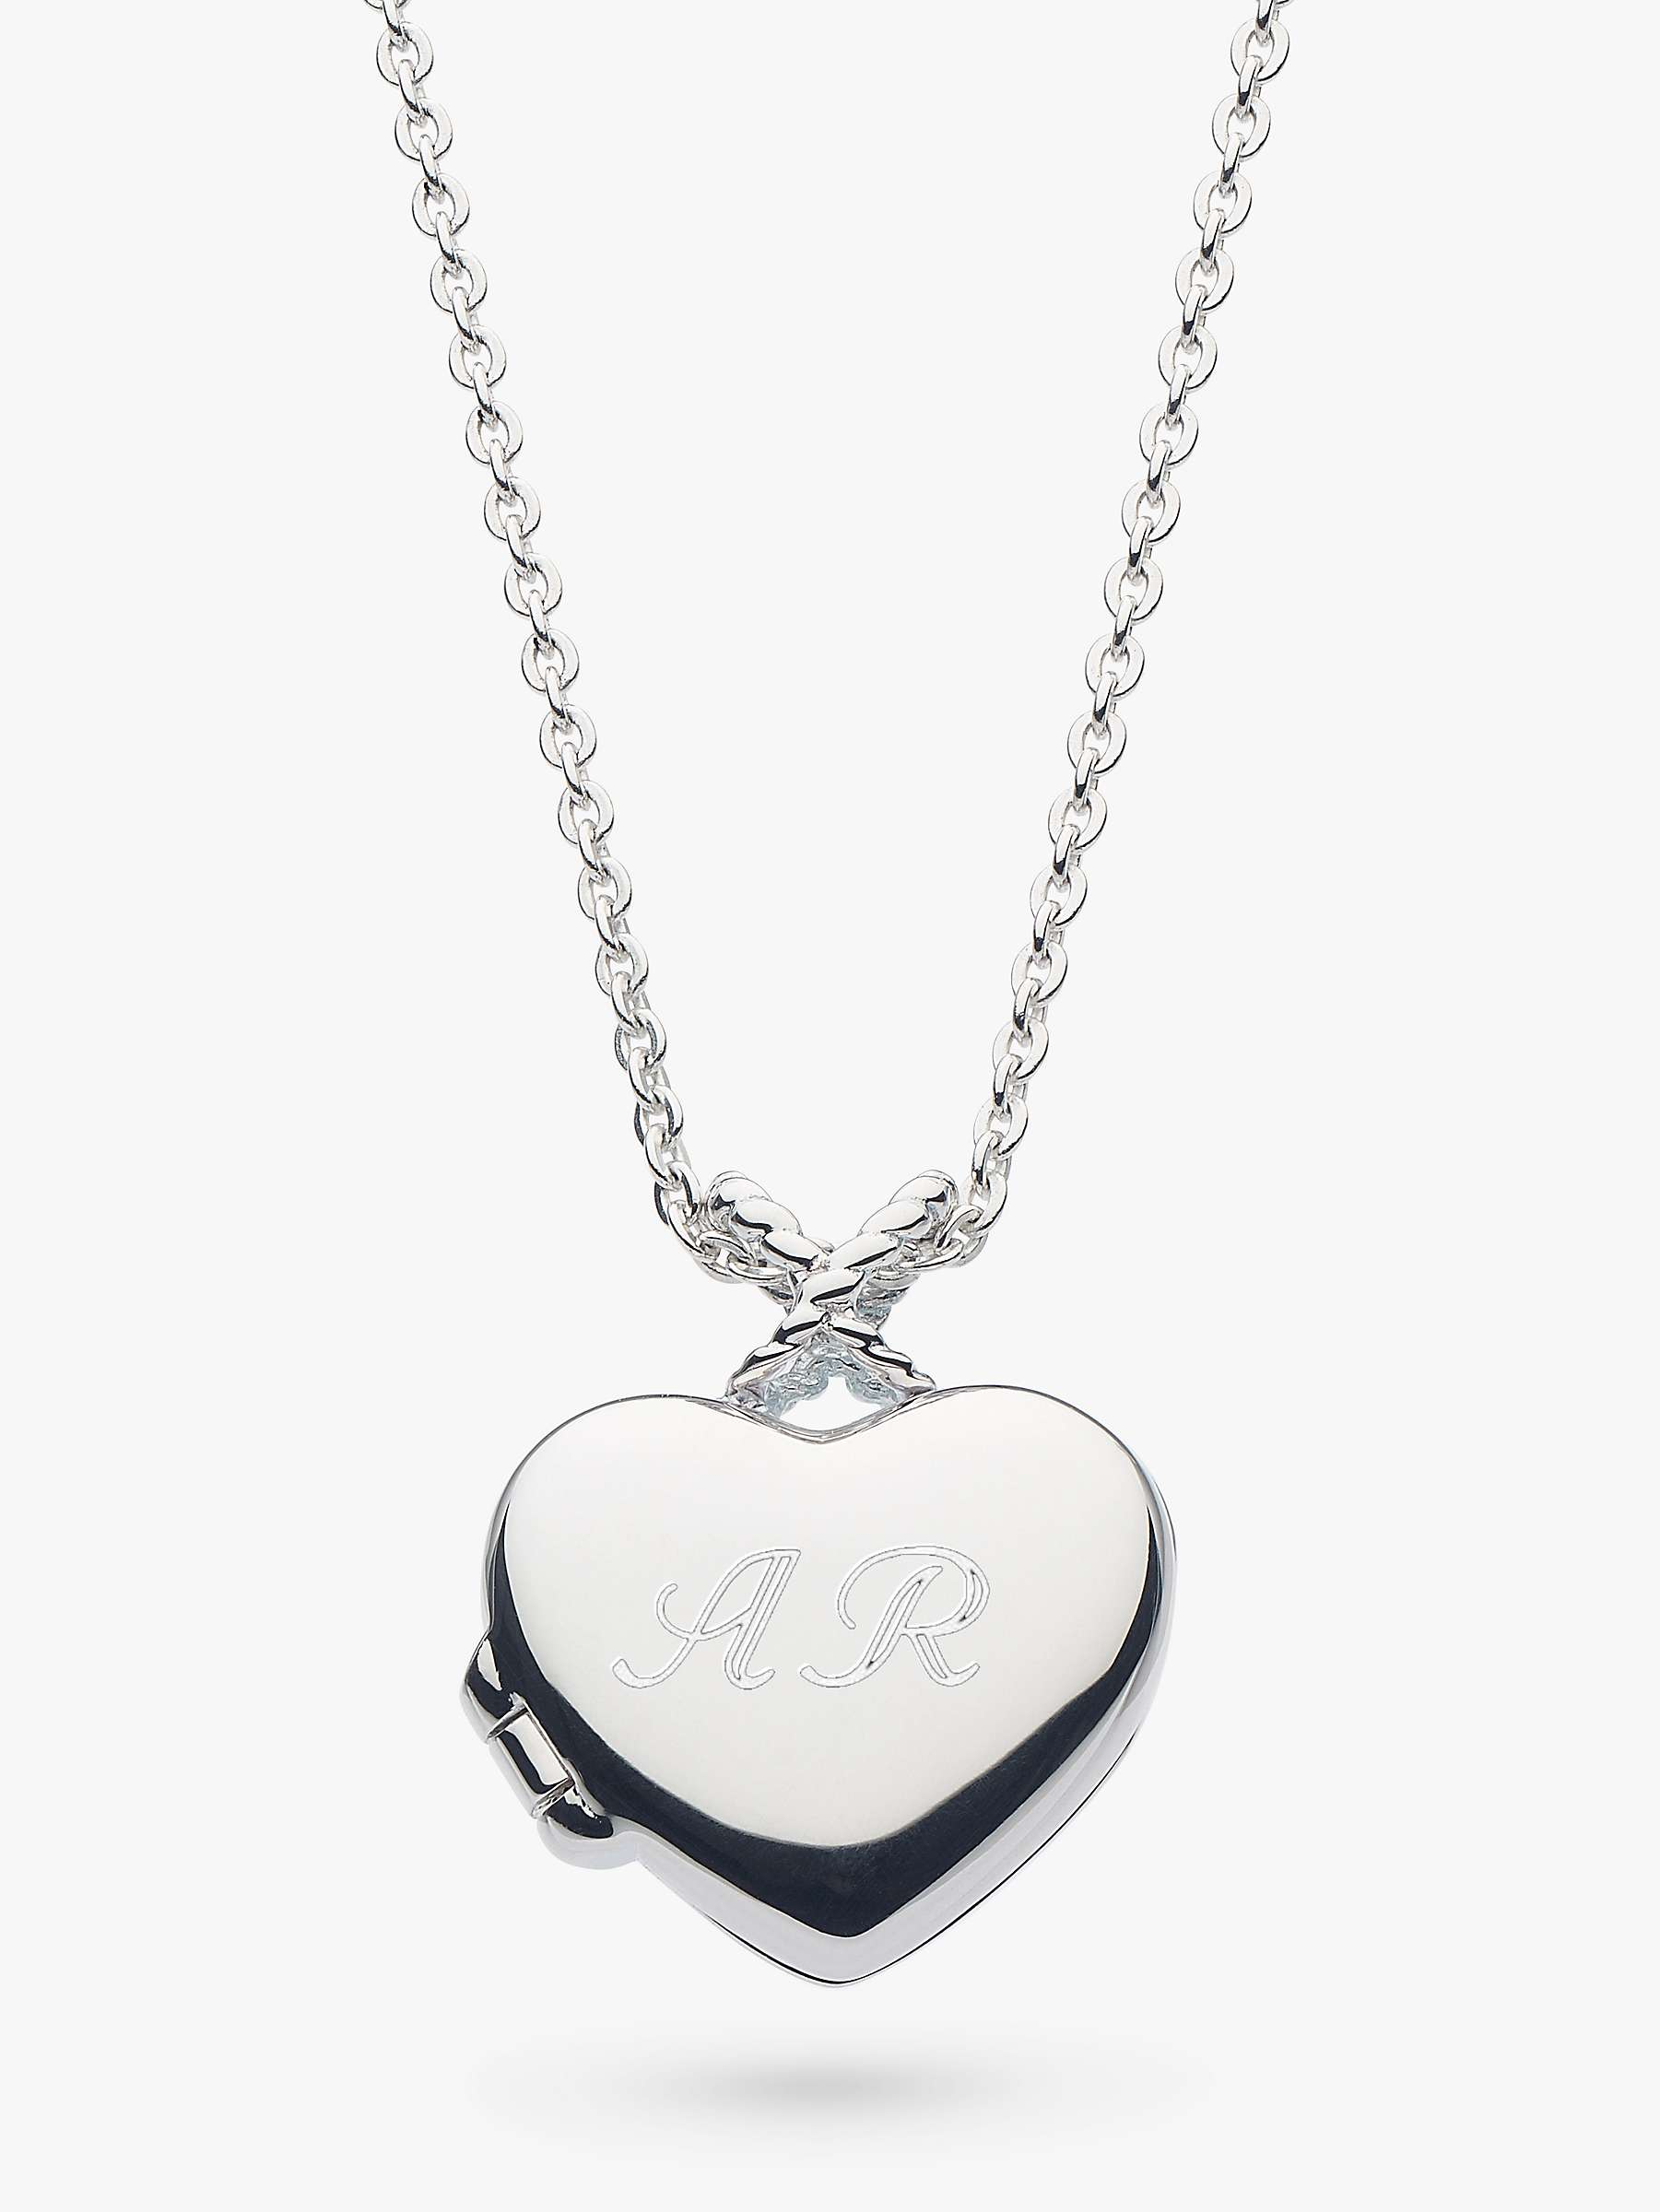 Sterling Silver Number 40 Necklace for Jersey Numbers /& Recovery High Polish 3//4 inch 2mm Curb Chain